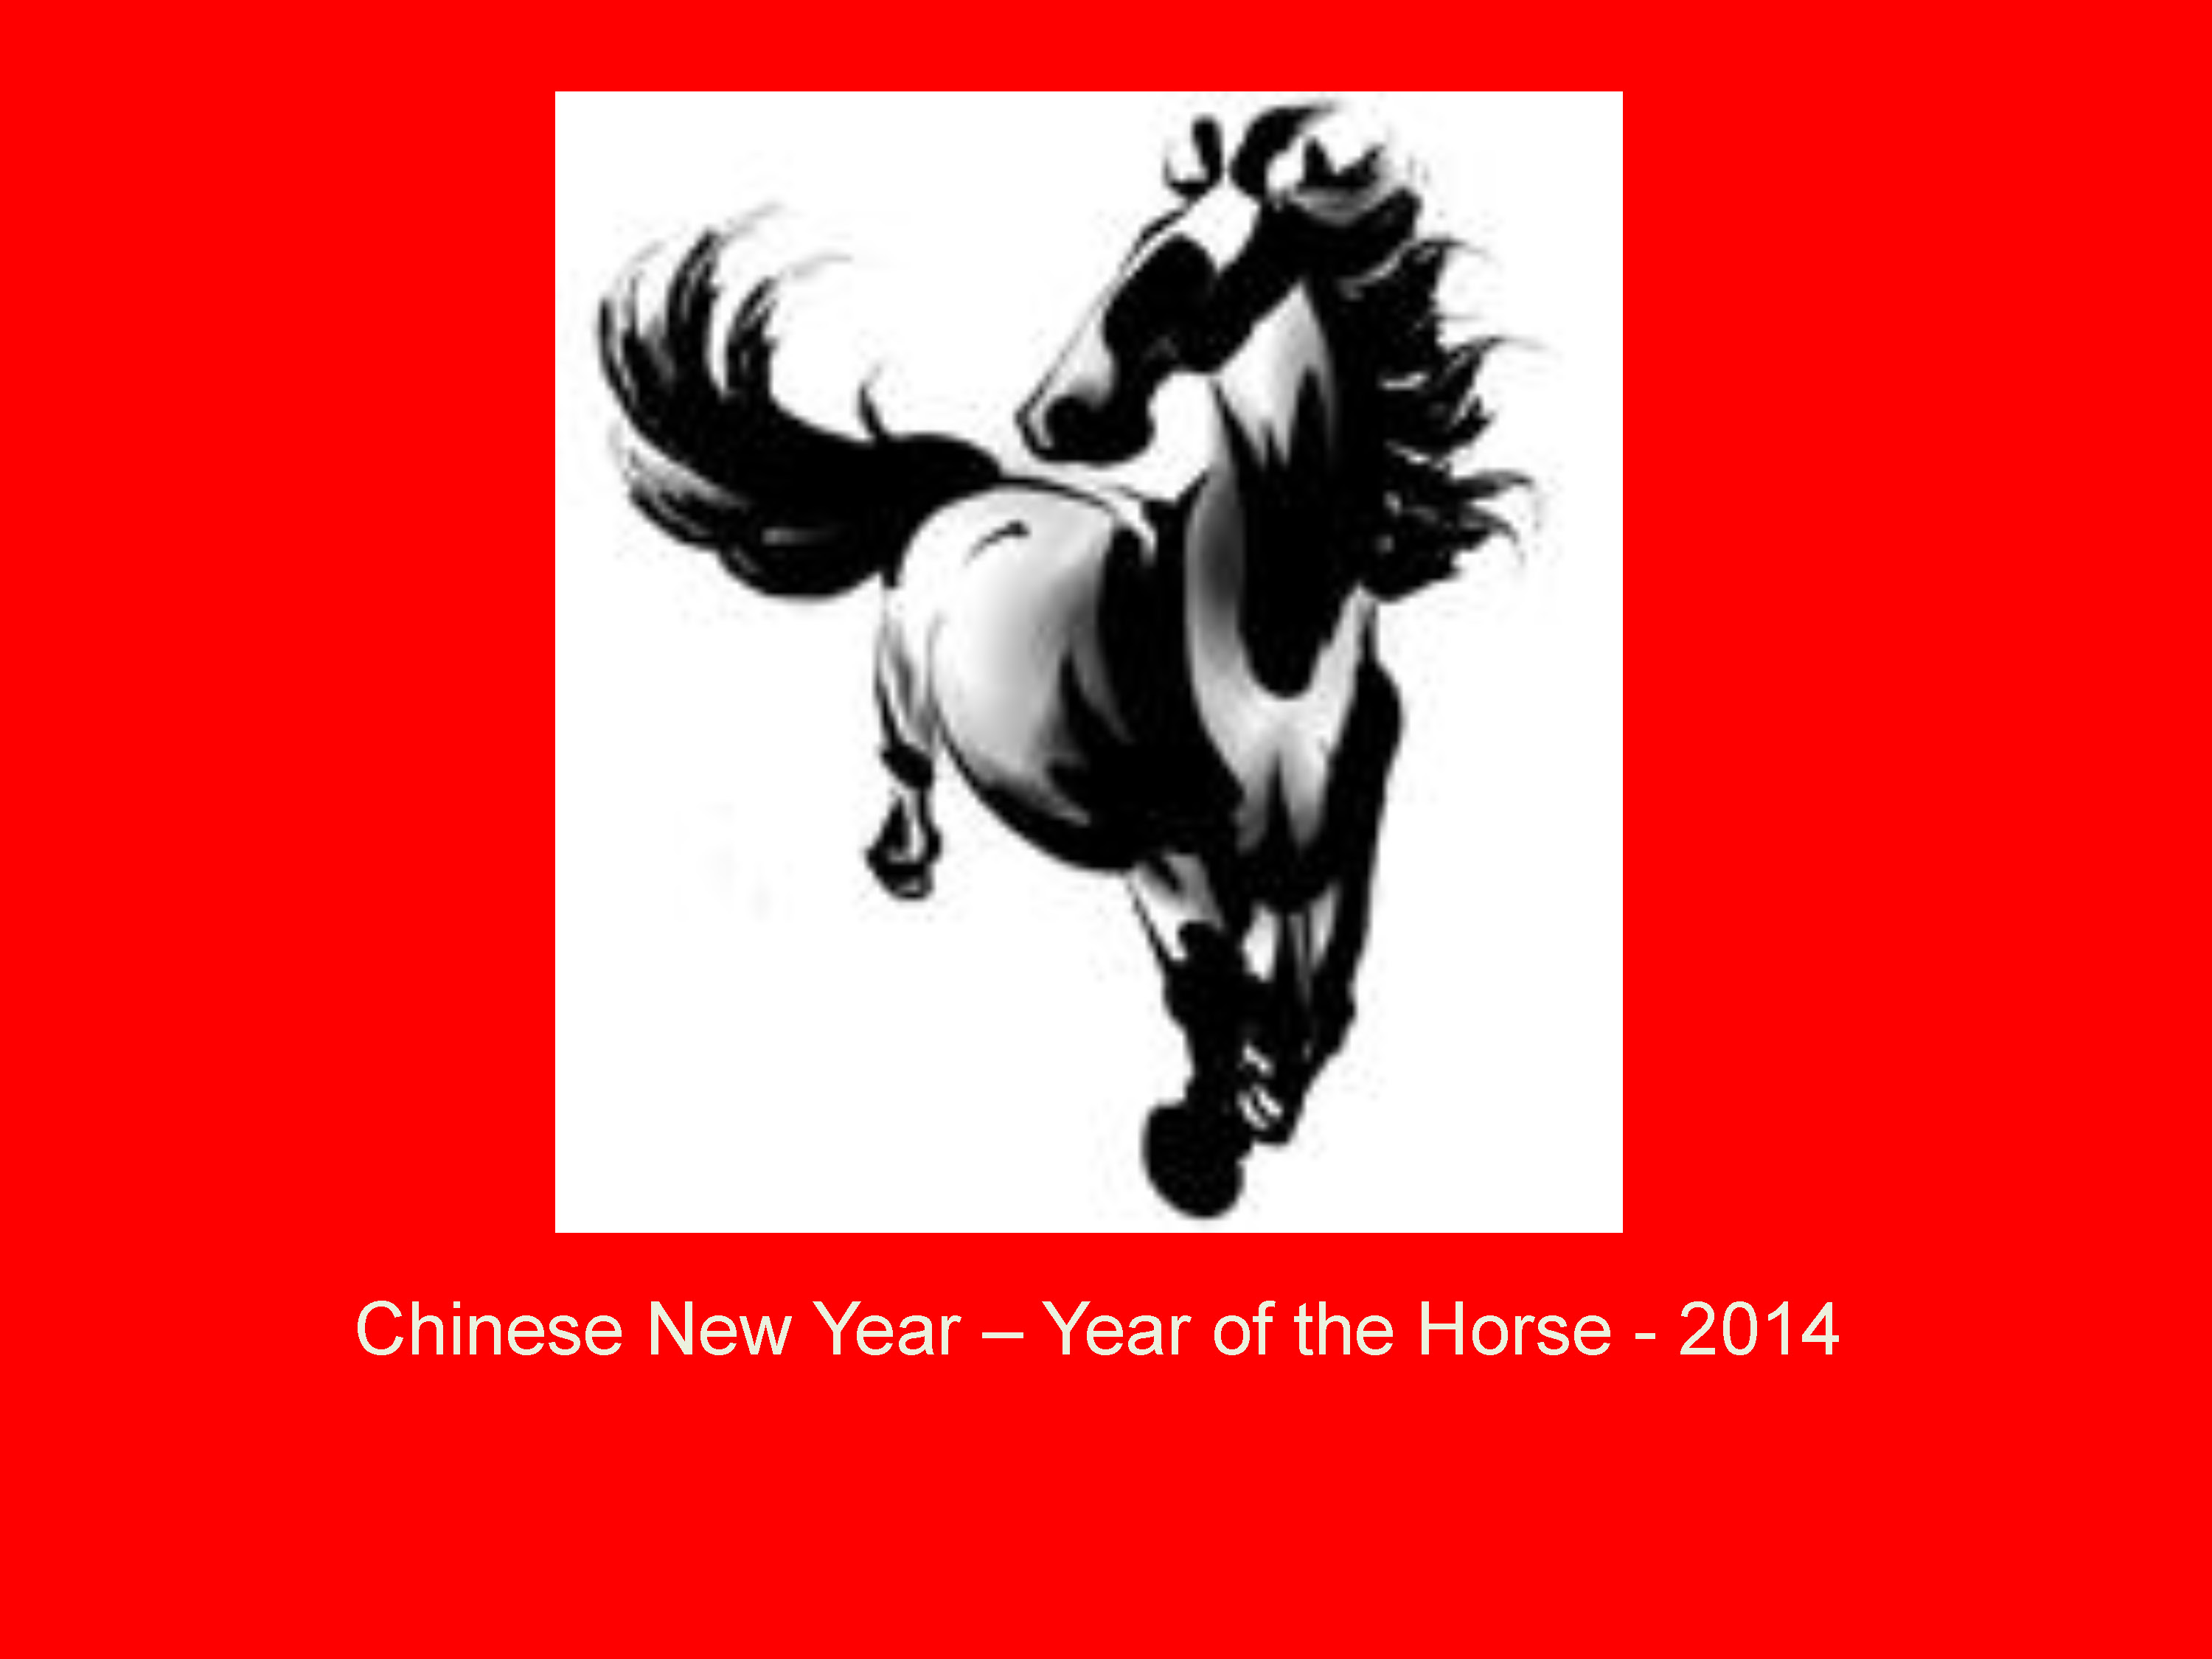 Chinese New Year 2014_Page_004